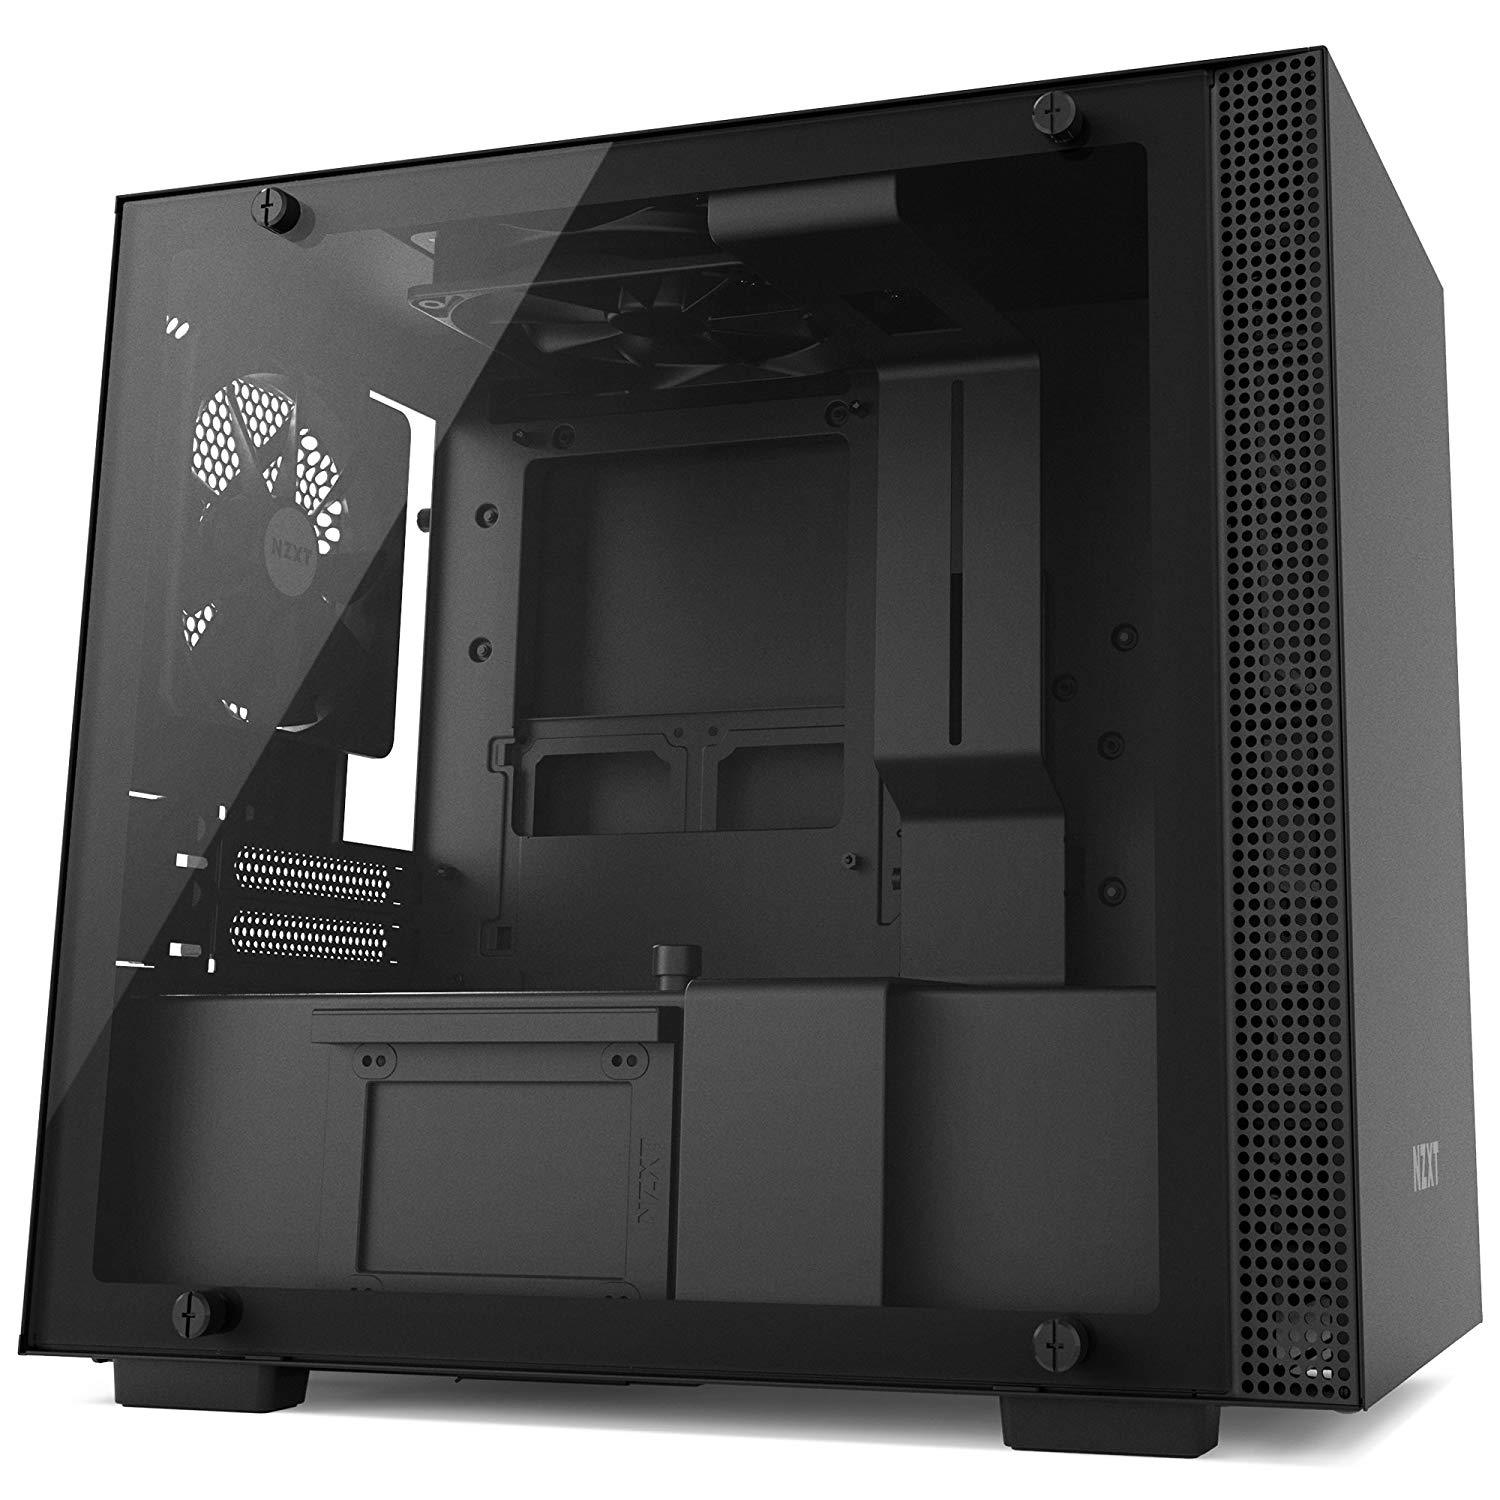 NZXT H200 Mini ITX Mini Tower Case - Black